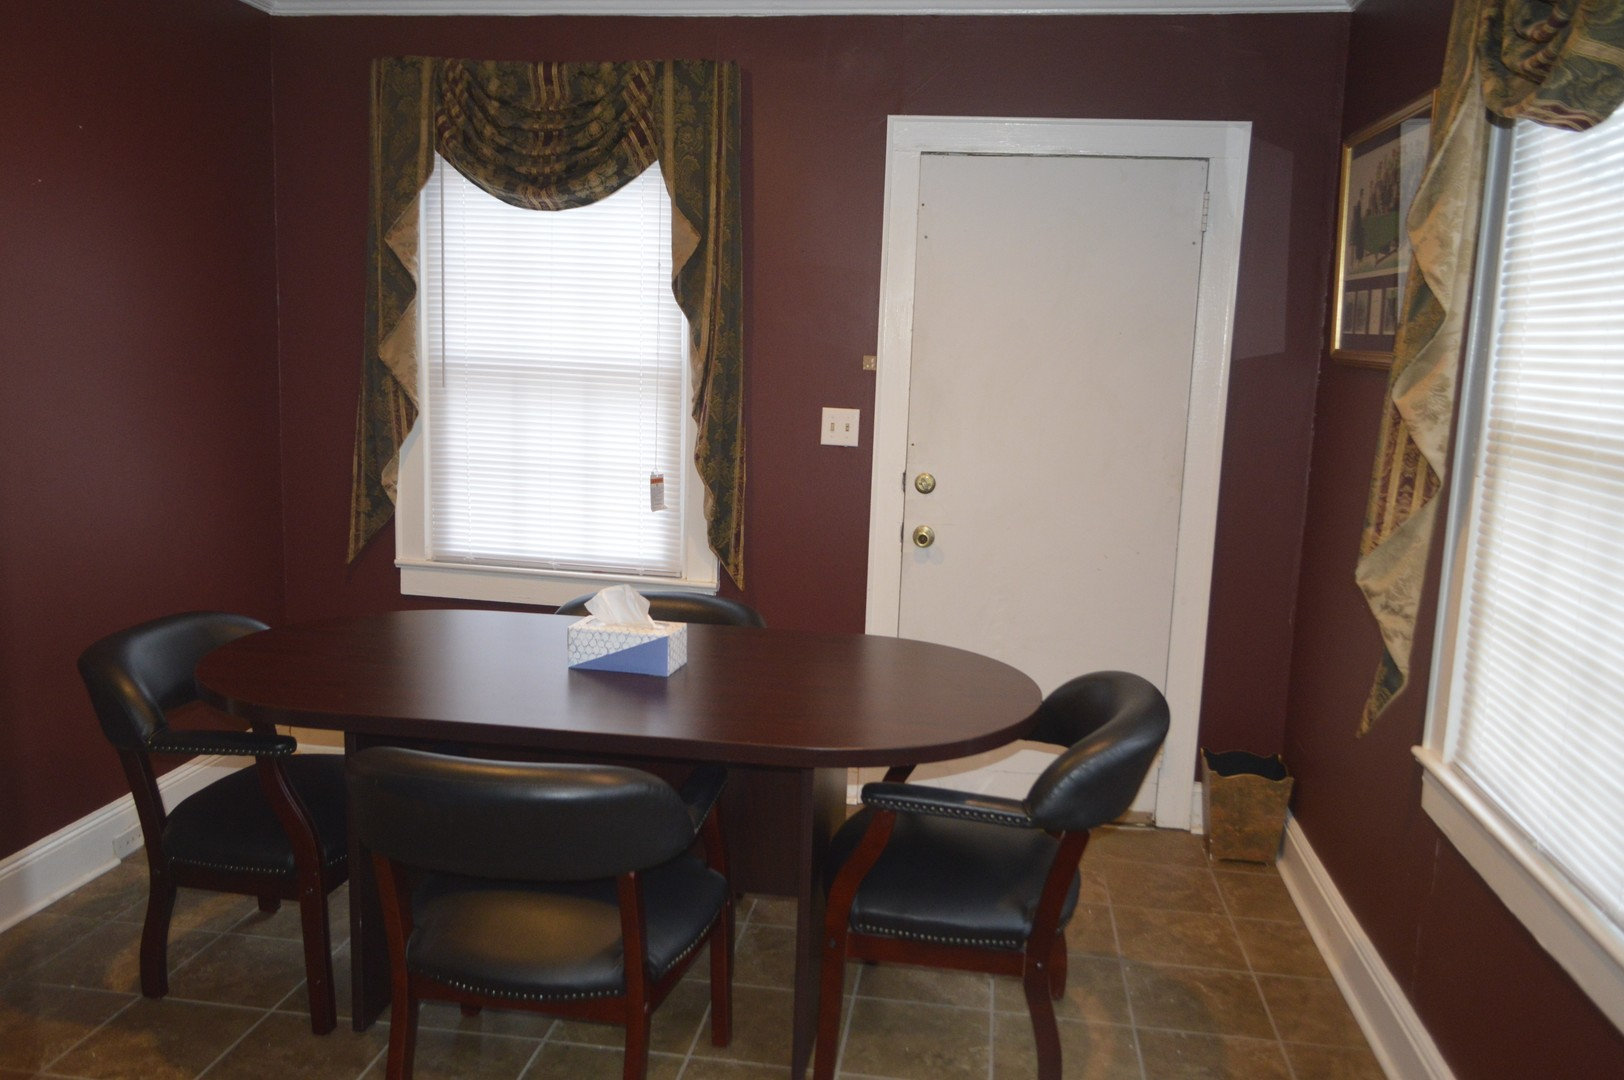 Office Space Close To Everything In Myrtle Beach Myrtle Beach Rental